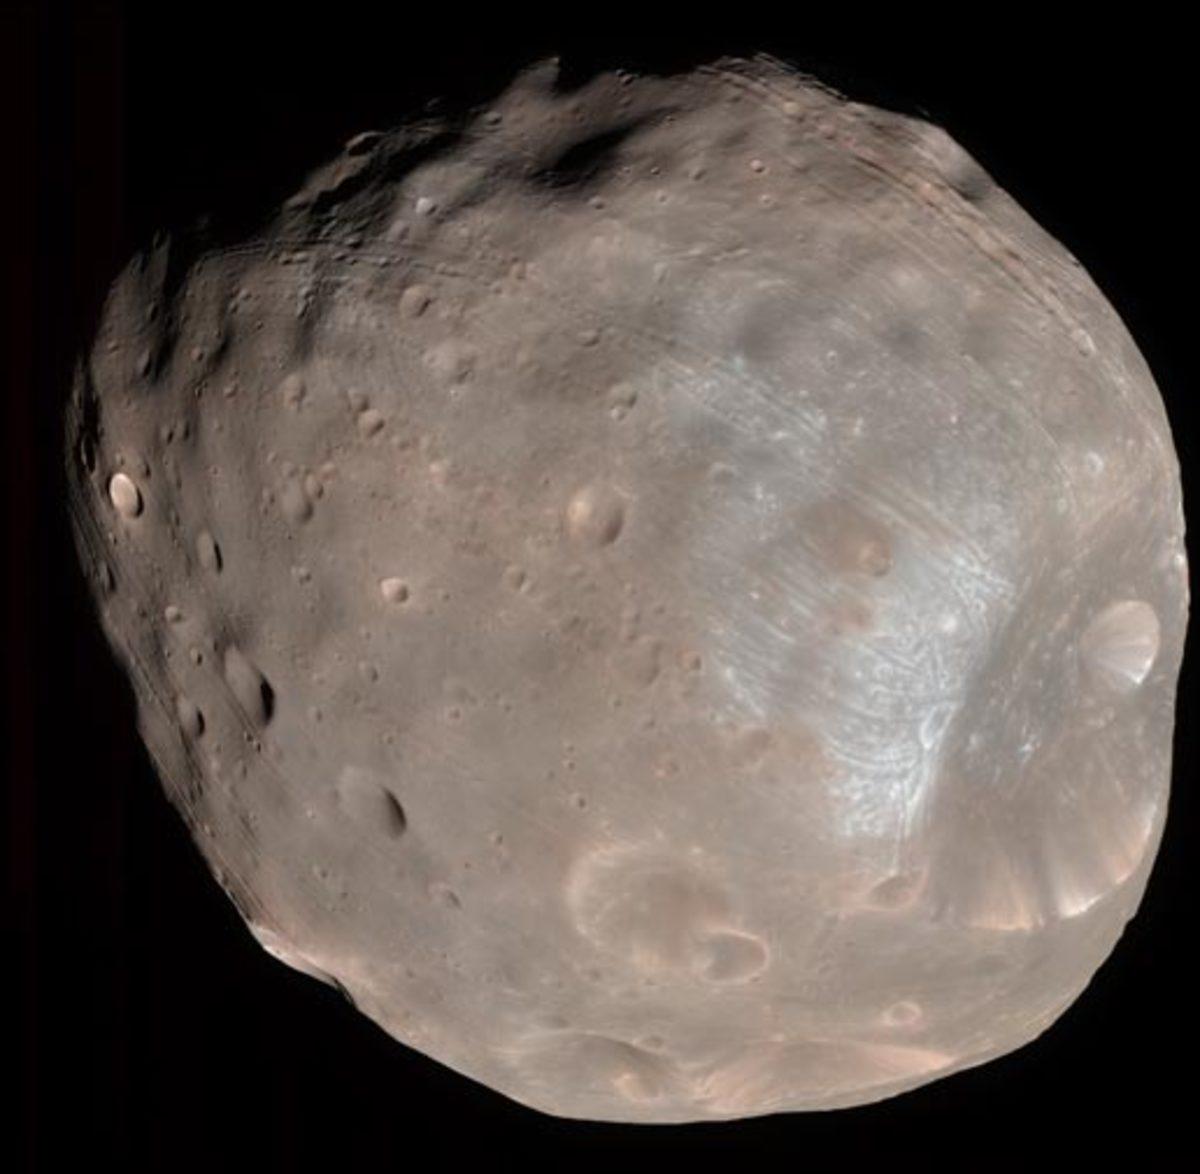 About 17 miles long, Phobos appears to be a captured asteroid circling Mars. In fact, it's caught in a death spiral: if Mars' gravity doesn't tear it apart into a ring, it will crash into the suface in ten million years.